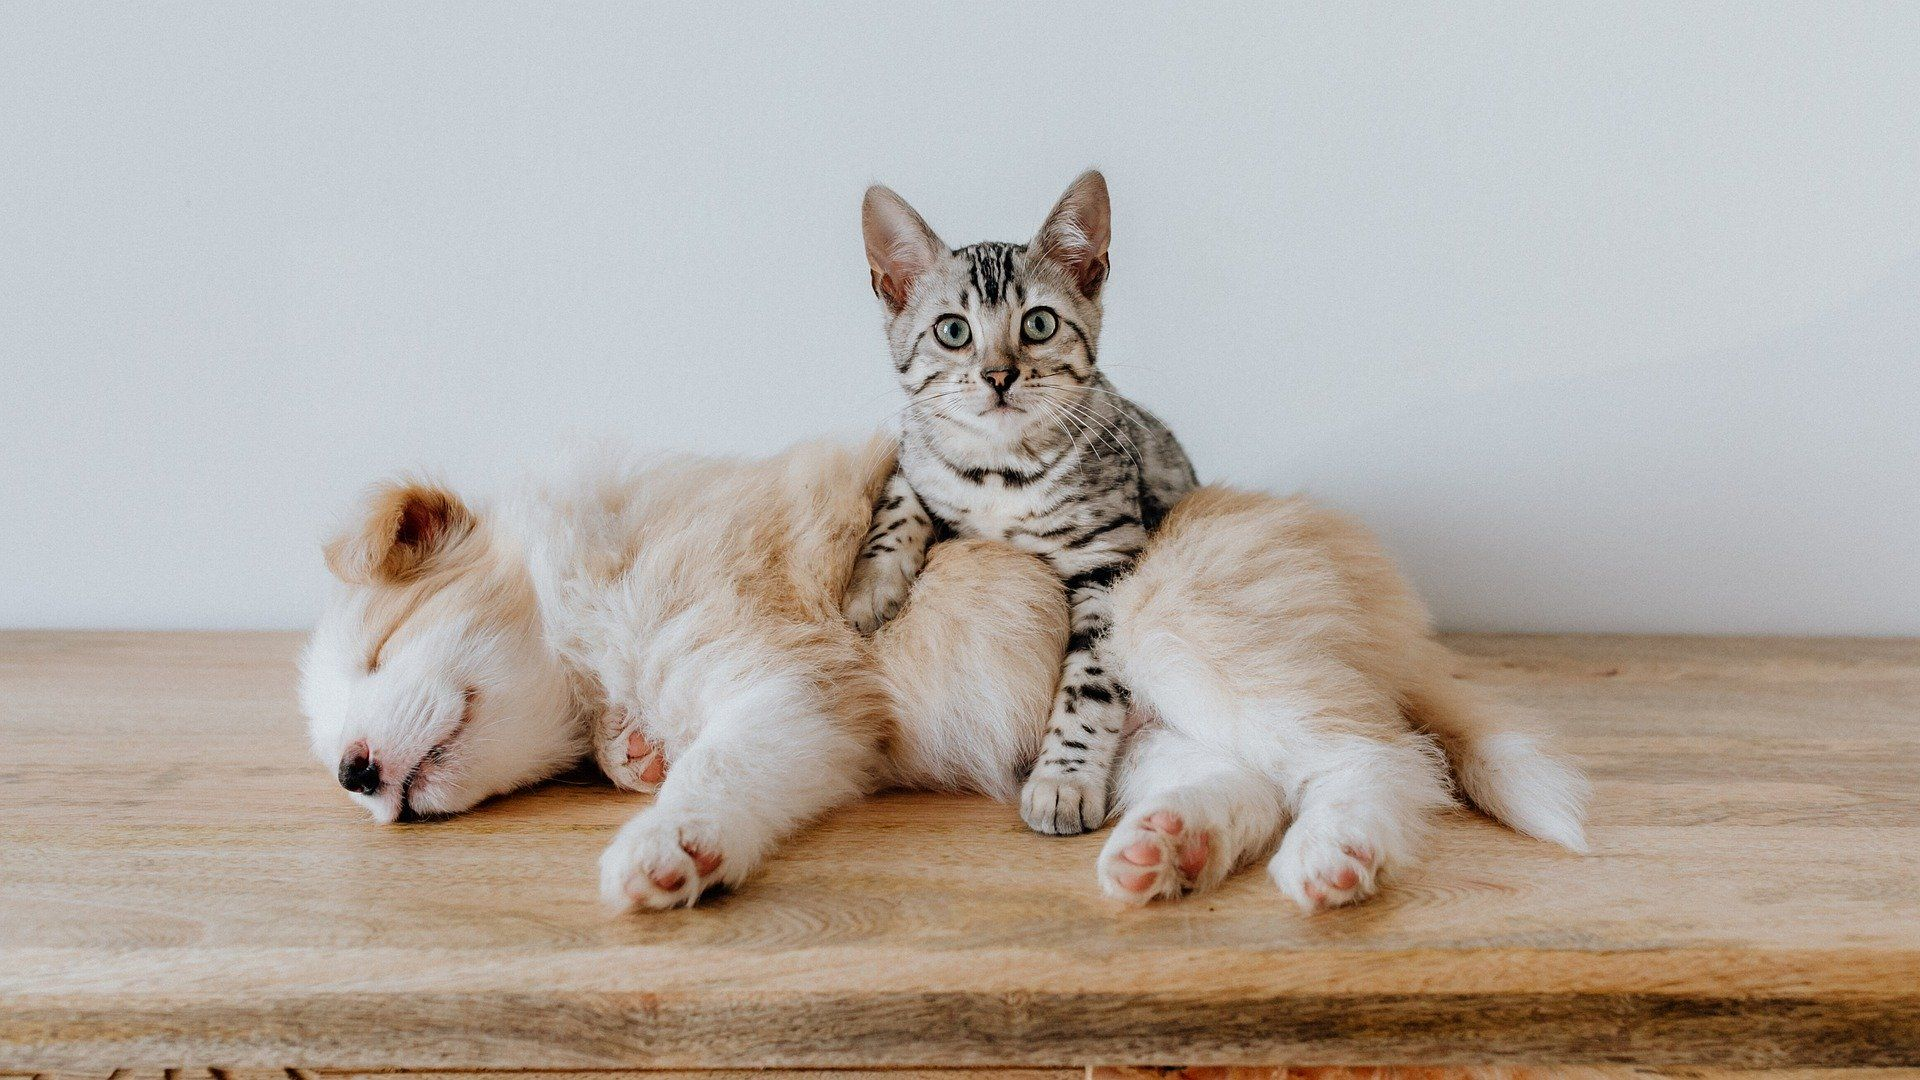 A Cute Baby And Cats Playing Together A Baby And A Cat Play Extremely Funny In 2020 Puppy Dog Images Free Puppies Puppy Images